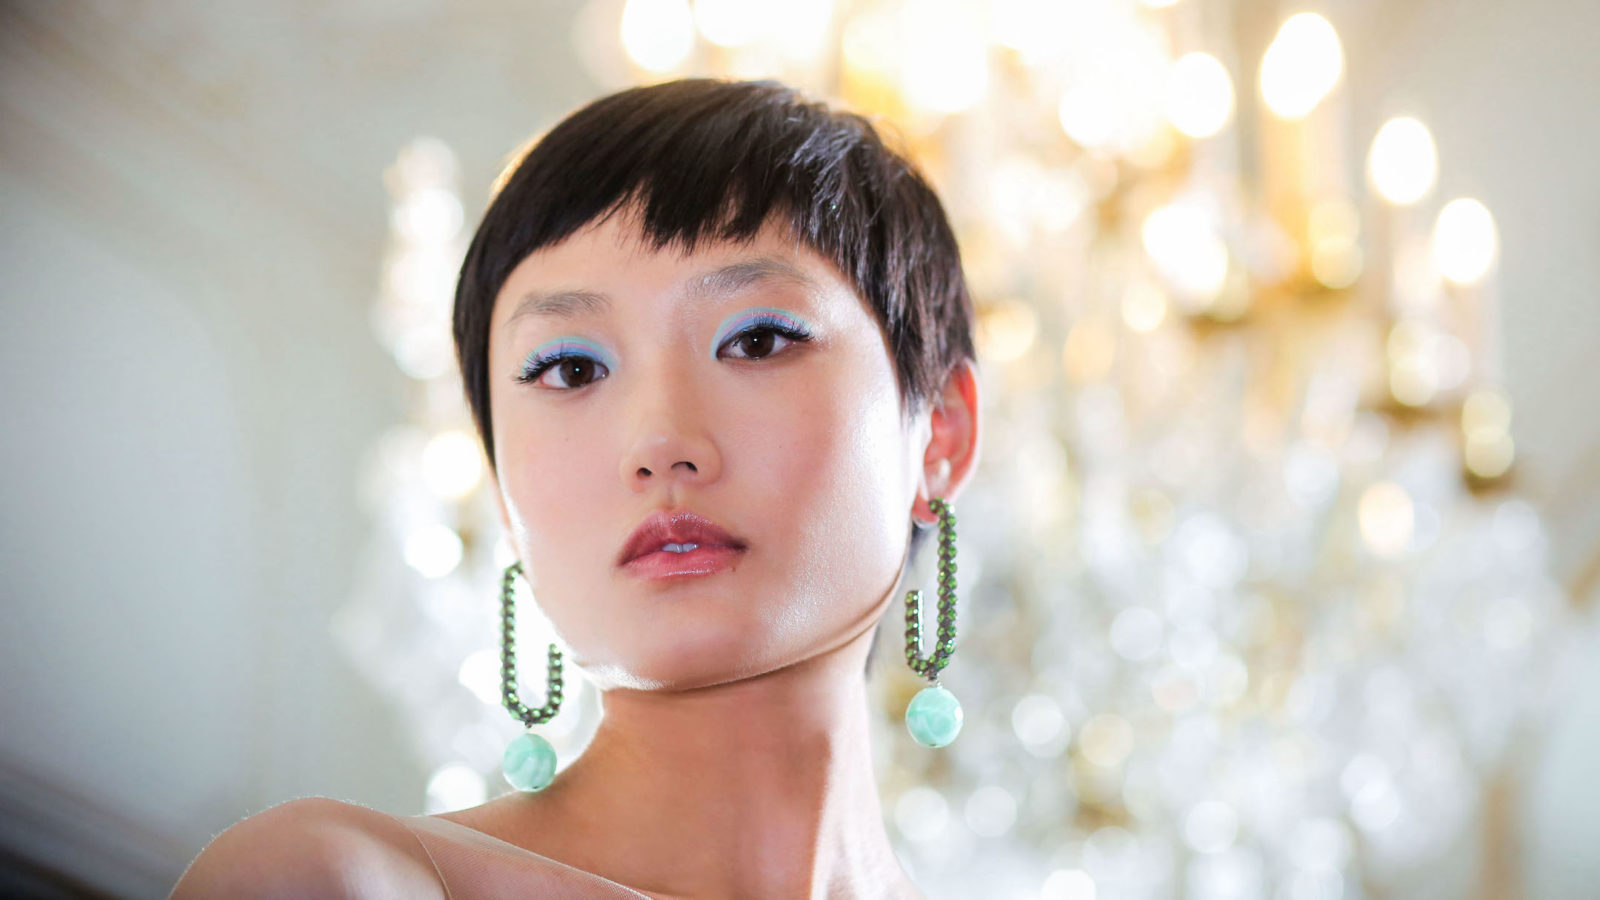 Beauty trends from the Autumn/Winter 2021 runways